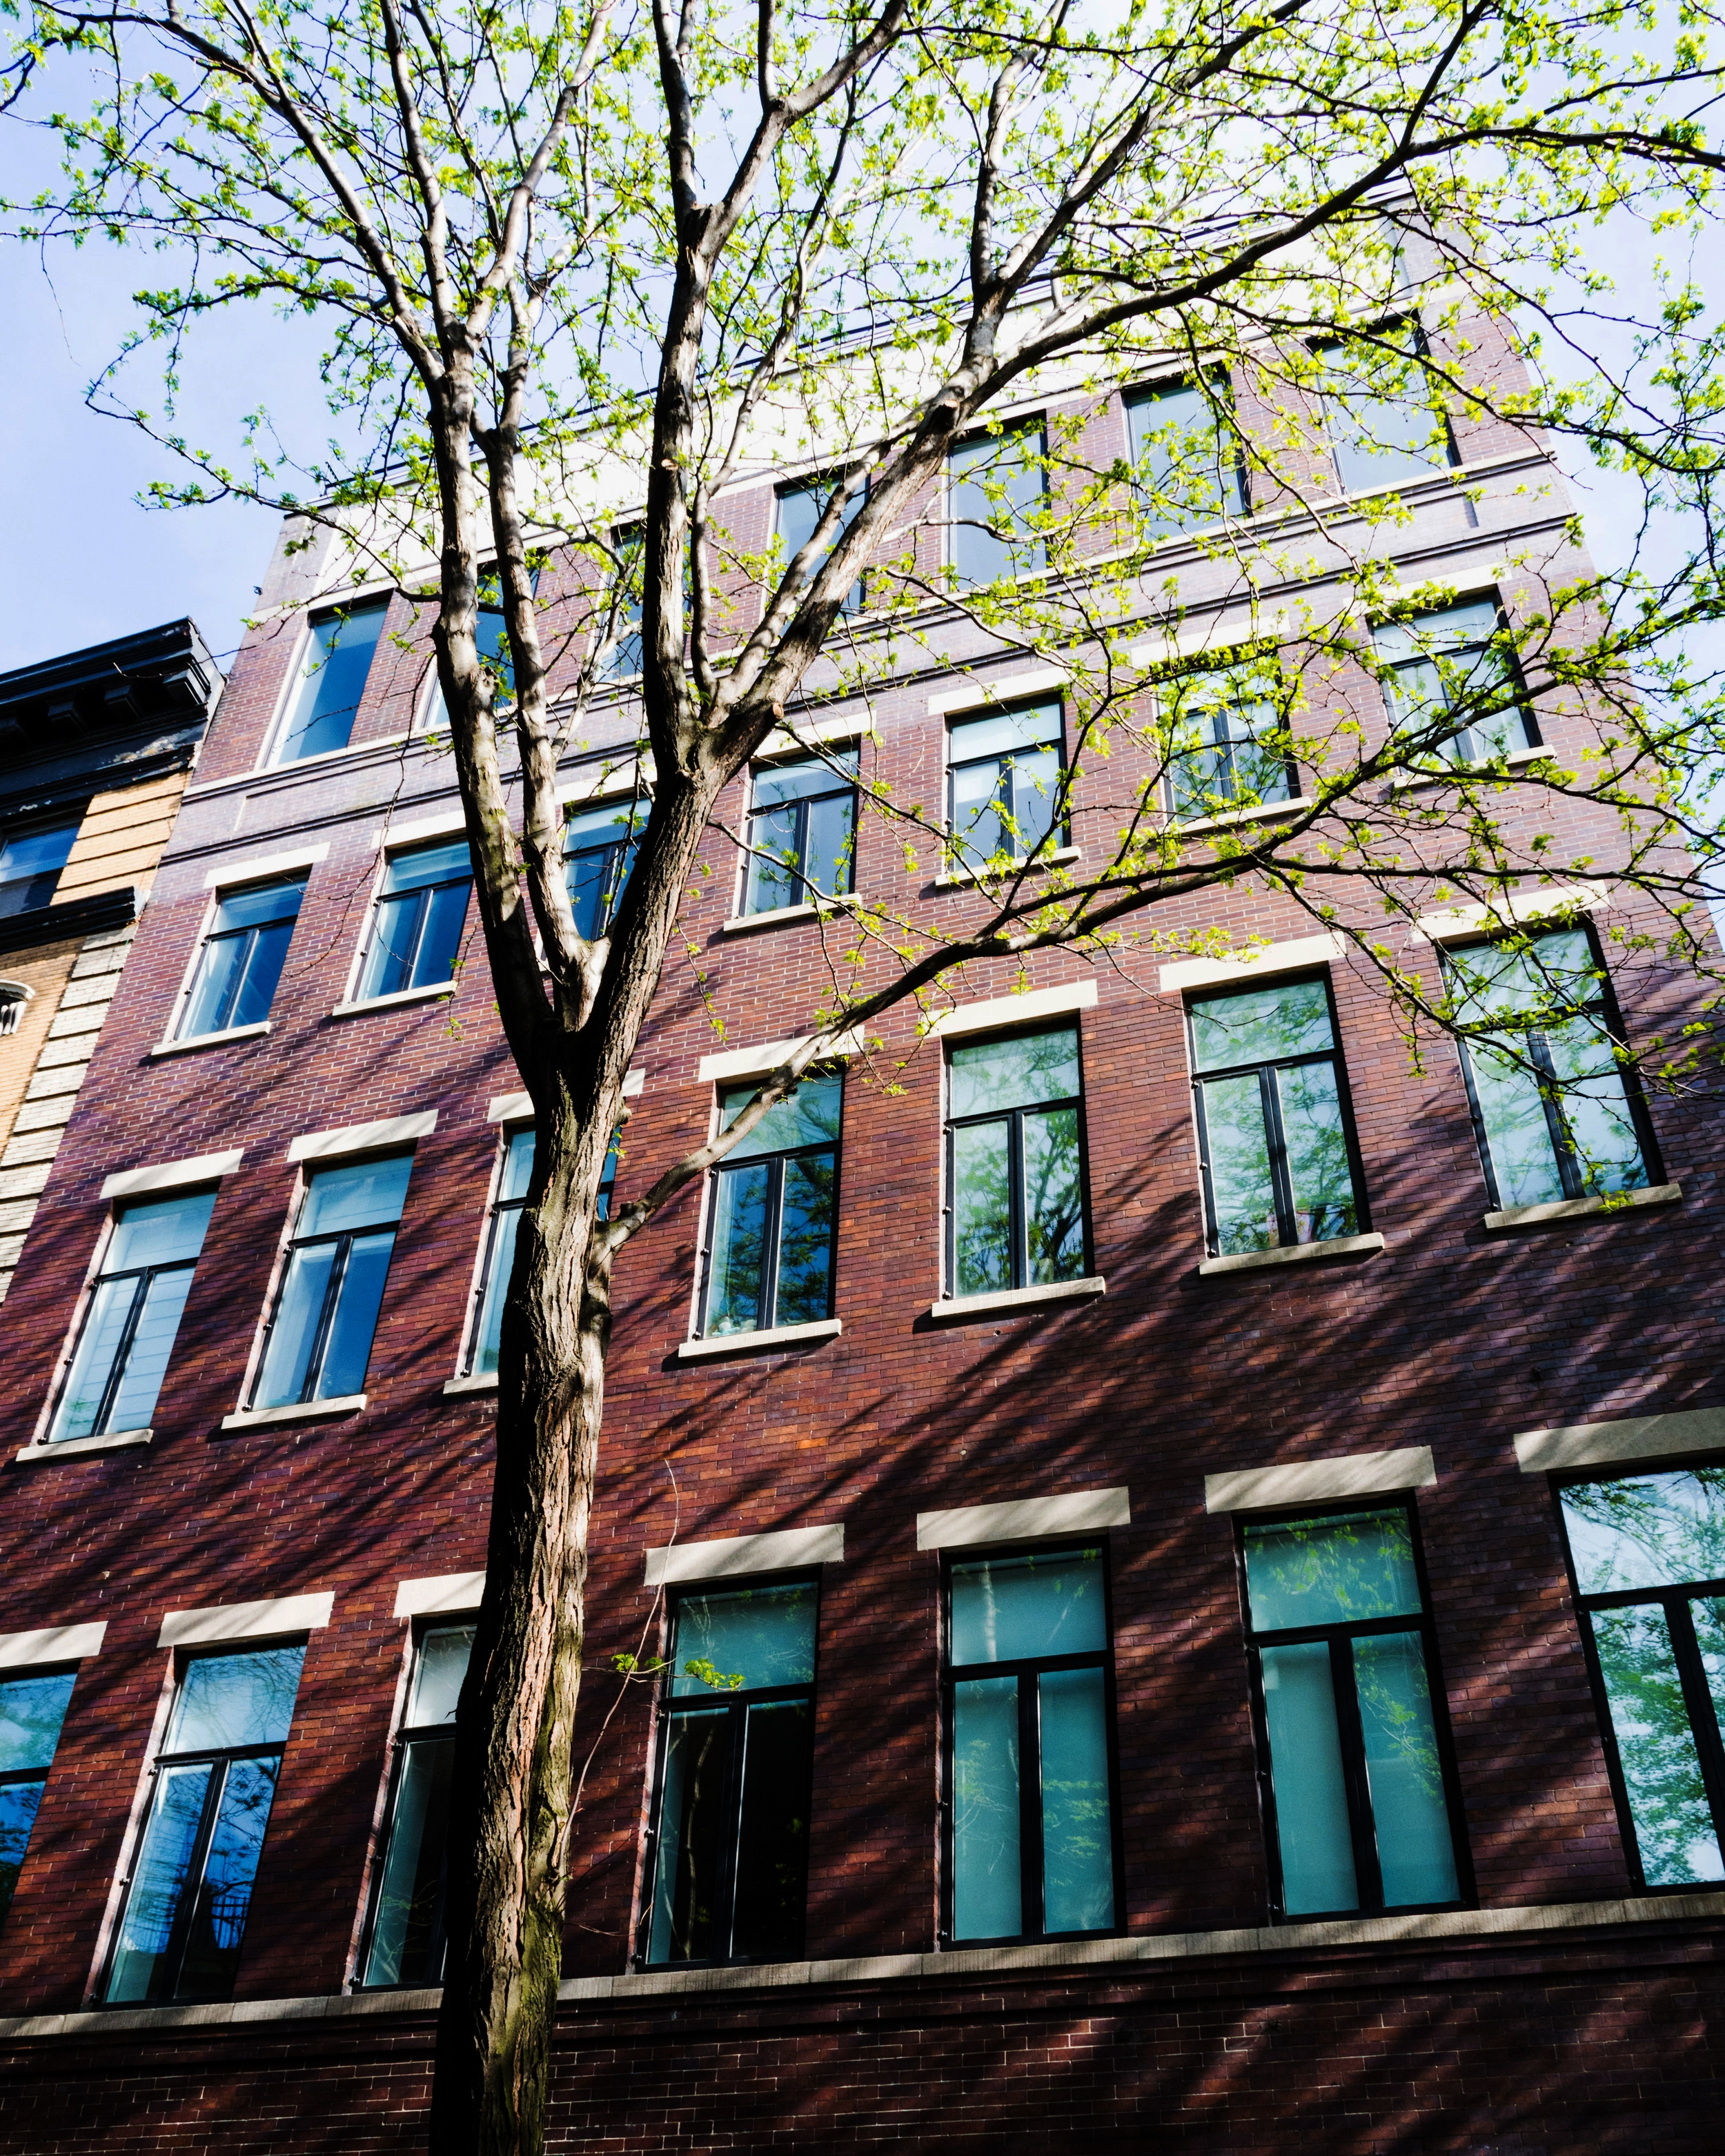 How To Find Good Short Term Apartment Rentals In New York City